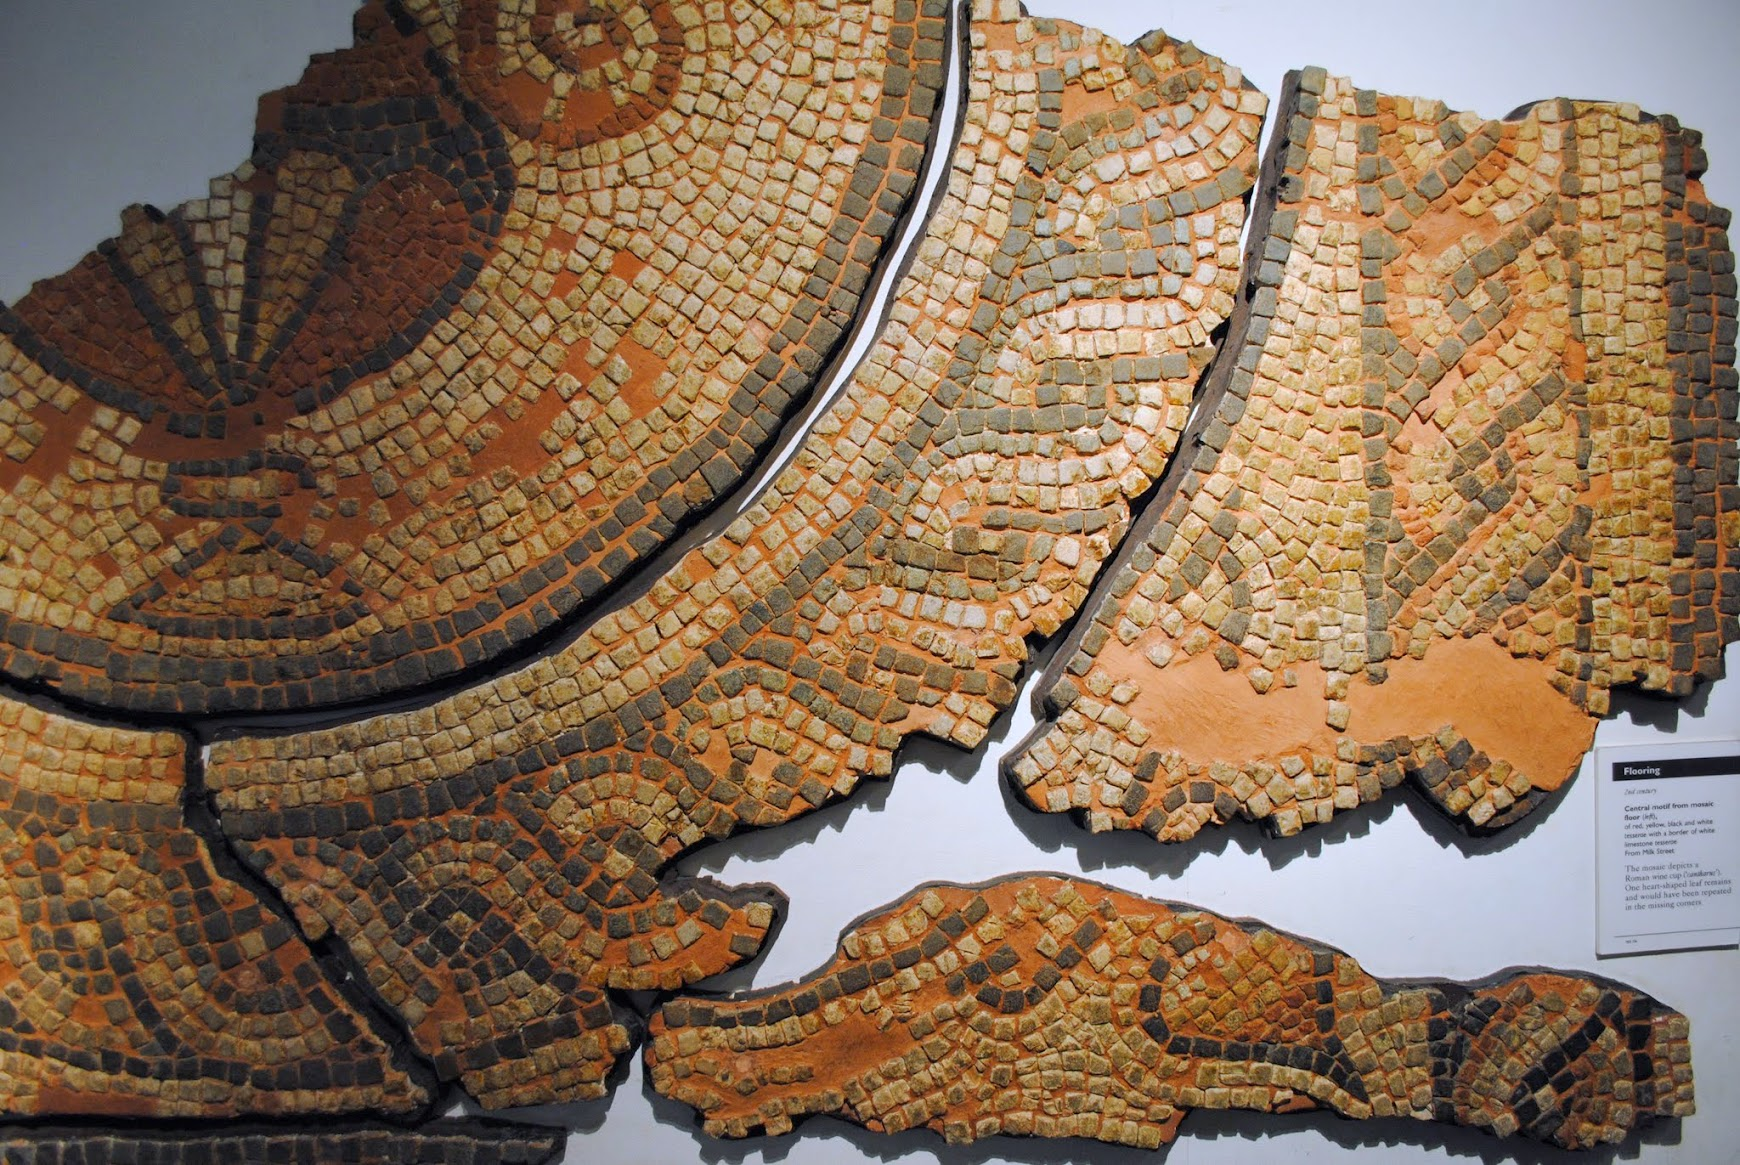 My Photos: Museum of London -- Bucklersbury Mosaics